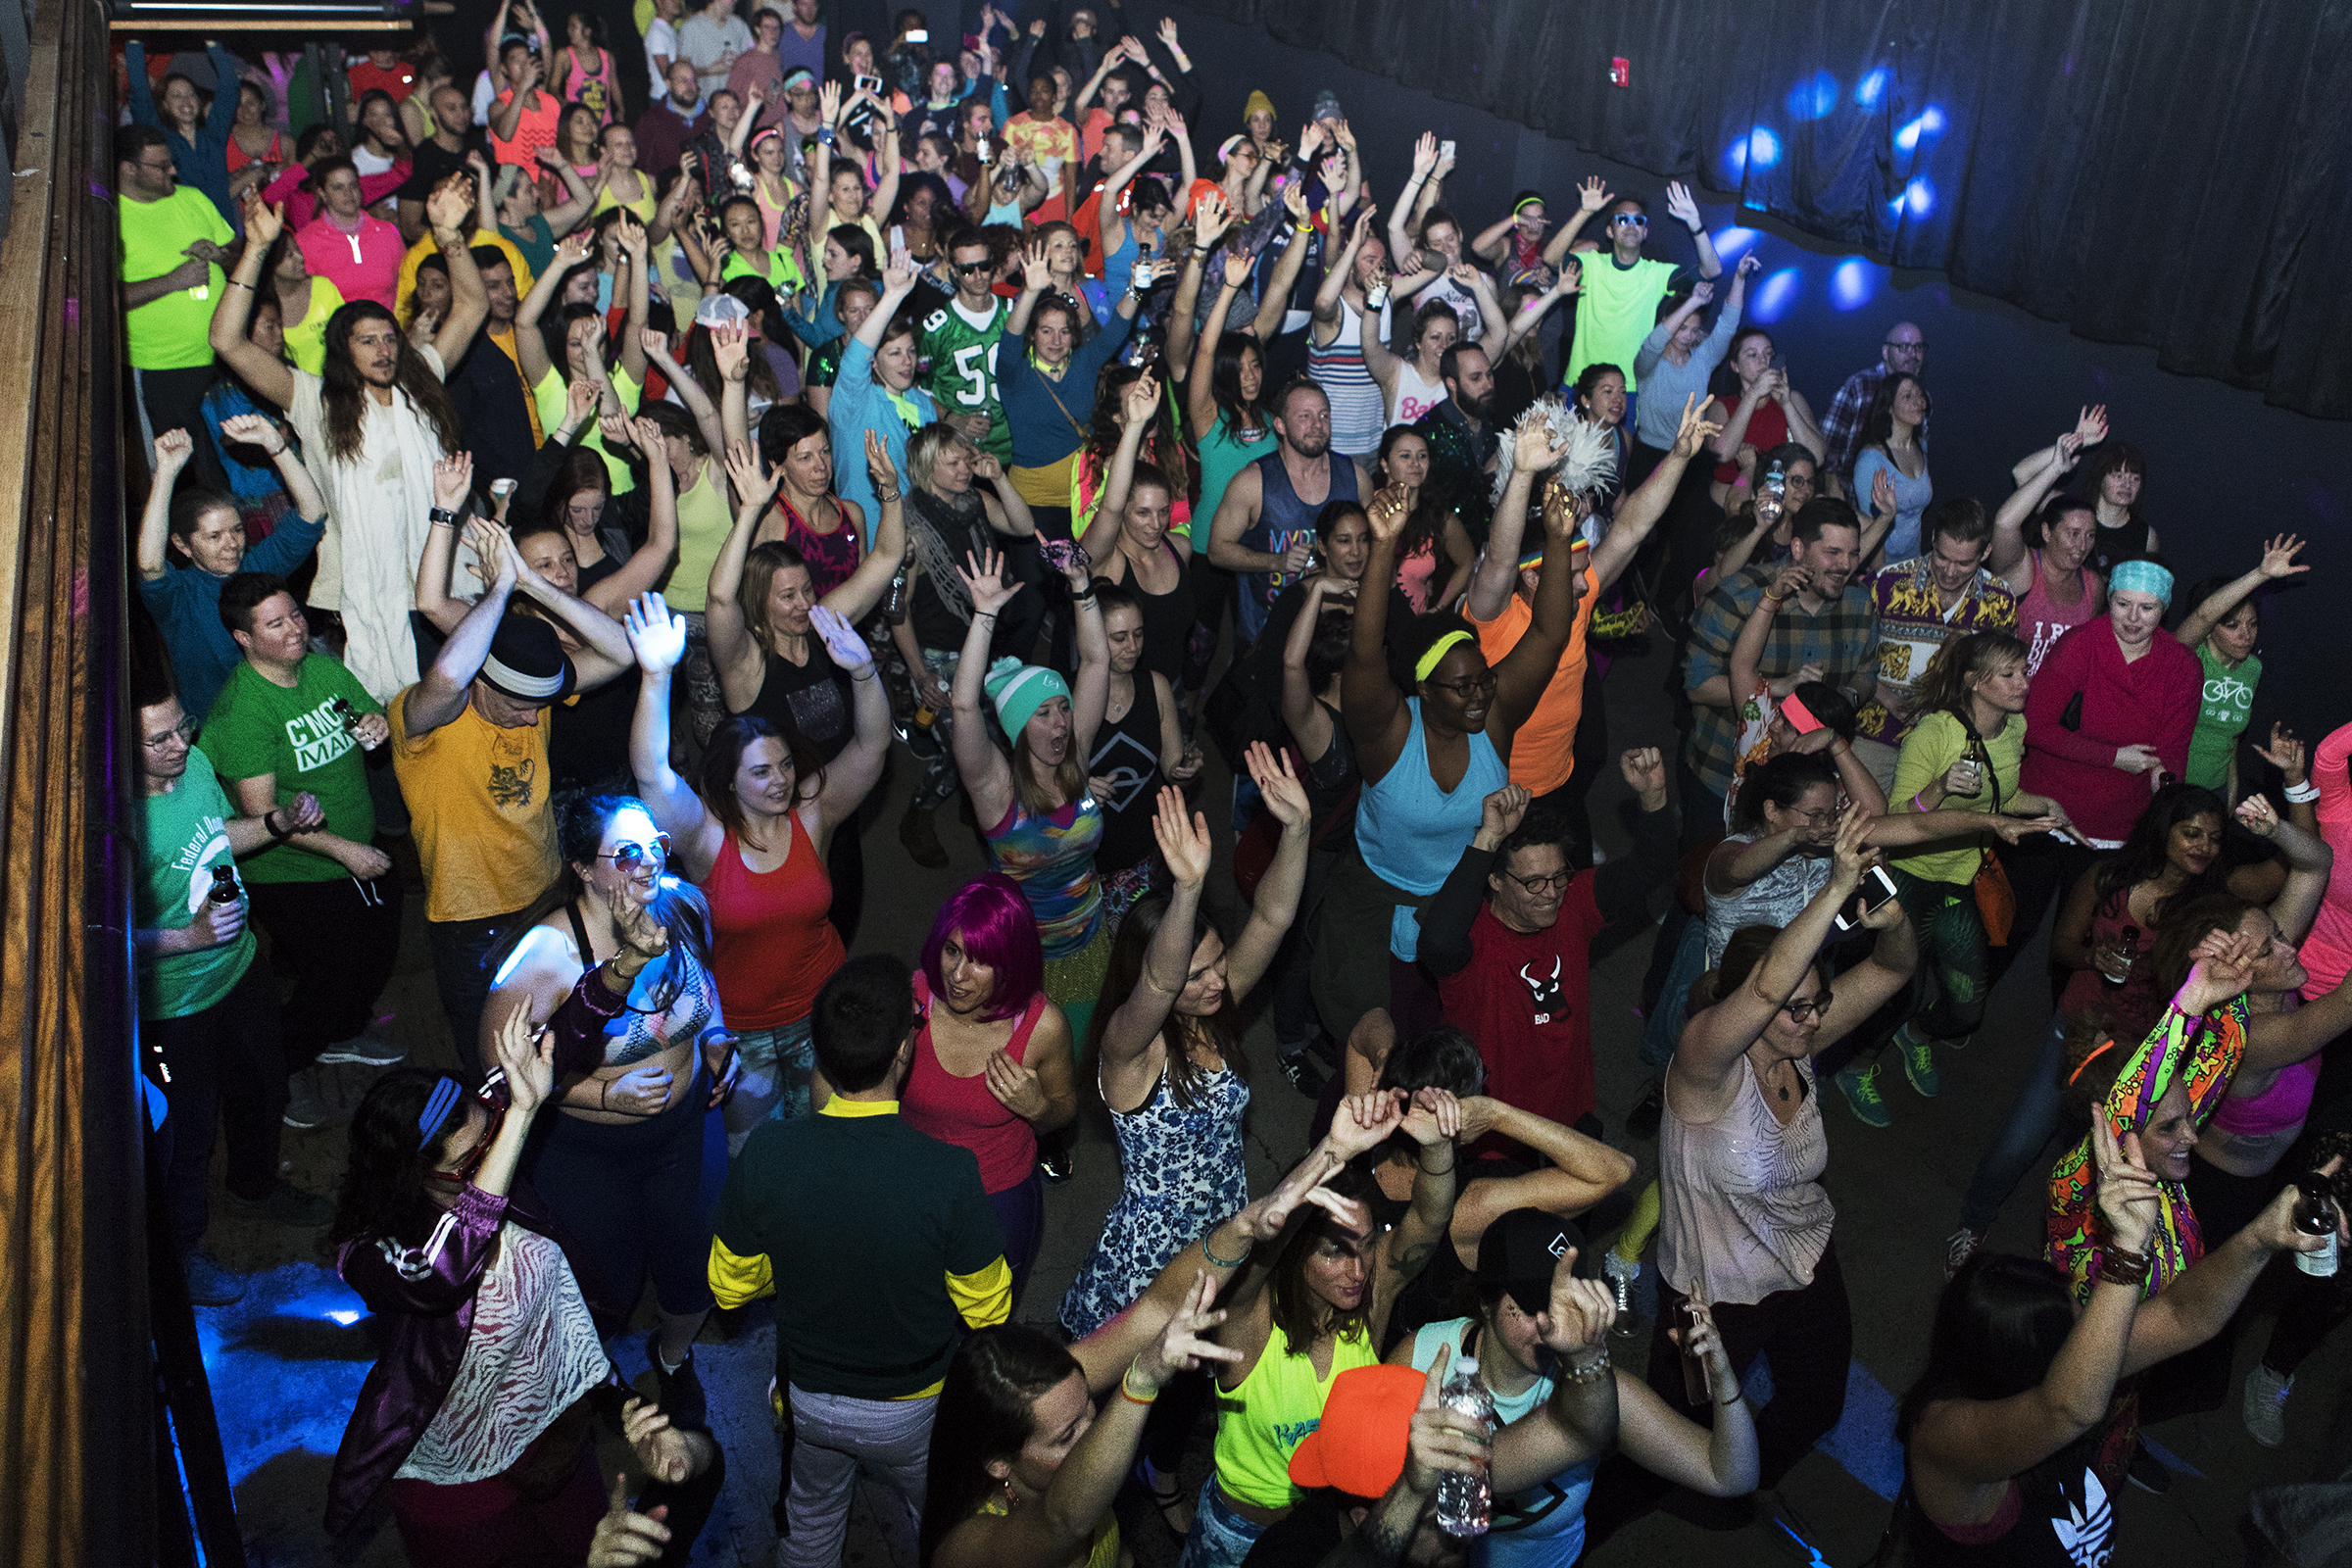 An aerial view of the Daybreaker / PHL dance party held at Coda 1712 Walnut St. in center city Philadelphia on Wednesday morning January 31, 2018. The dance party took place after a 6 a.m. yoga session.